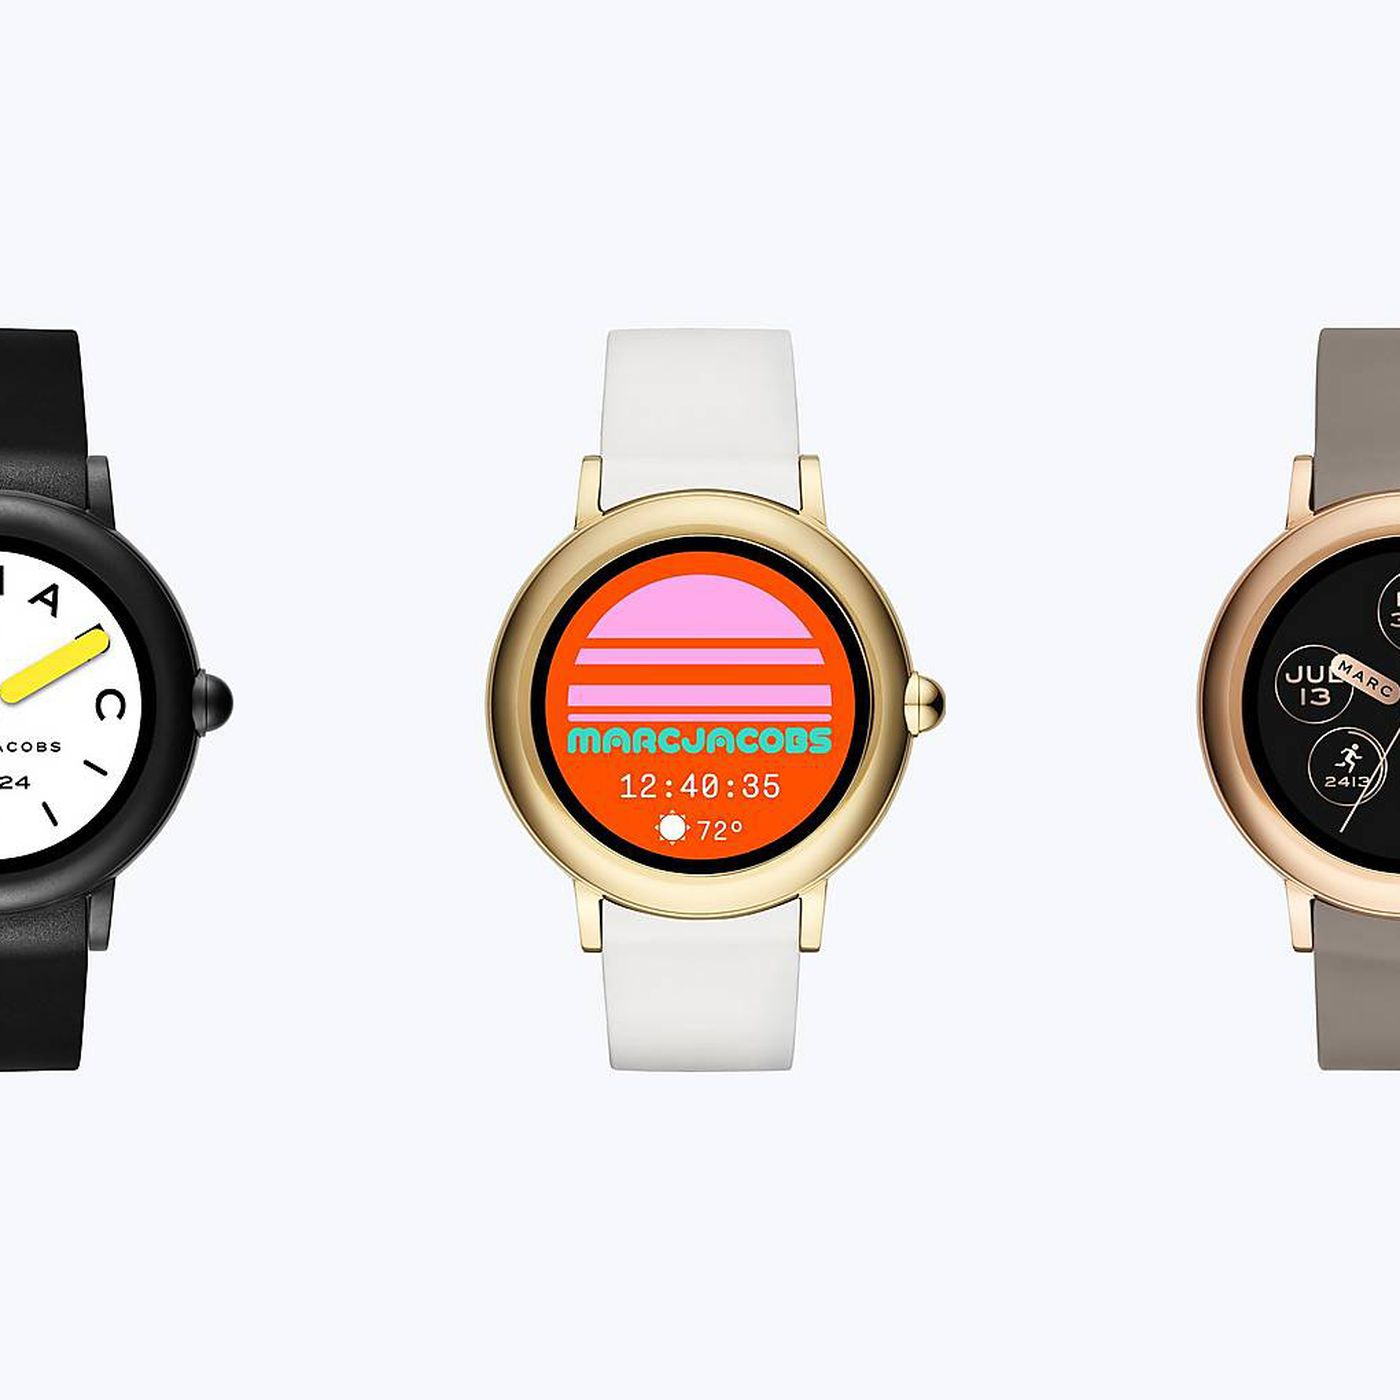 Marc Jacobs New Smartwatch Gets A Touchscreen At The Expense Of A Long Battery Life The Verge